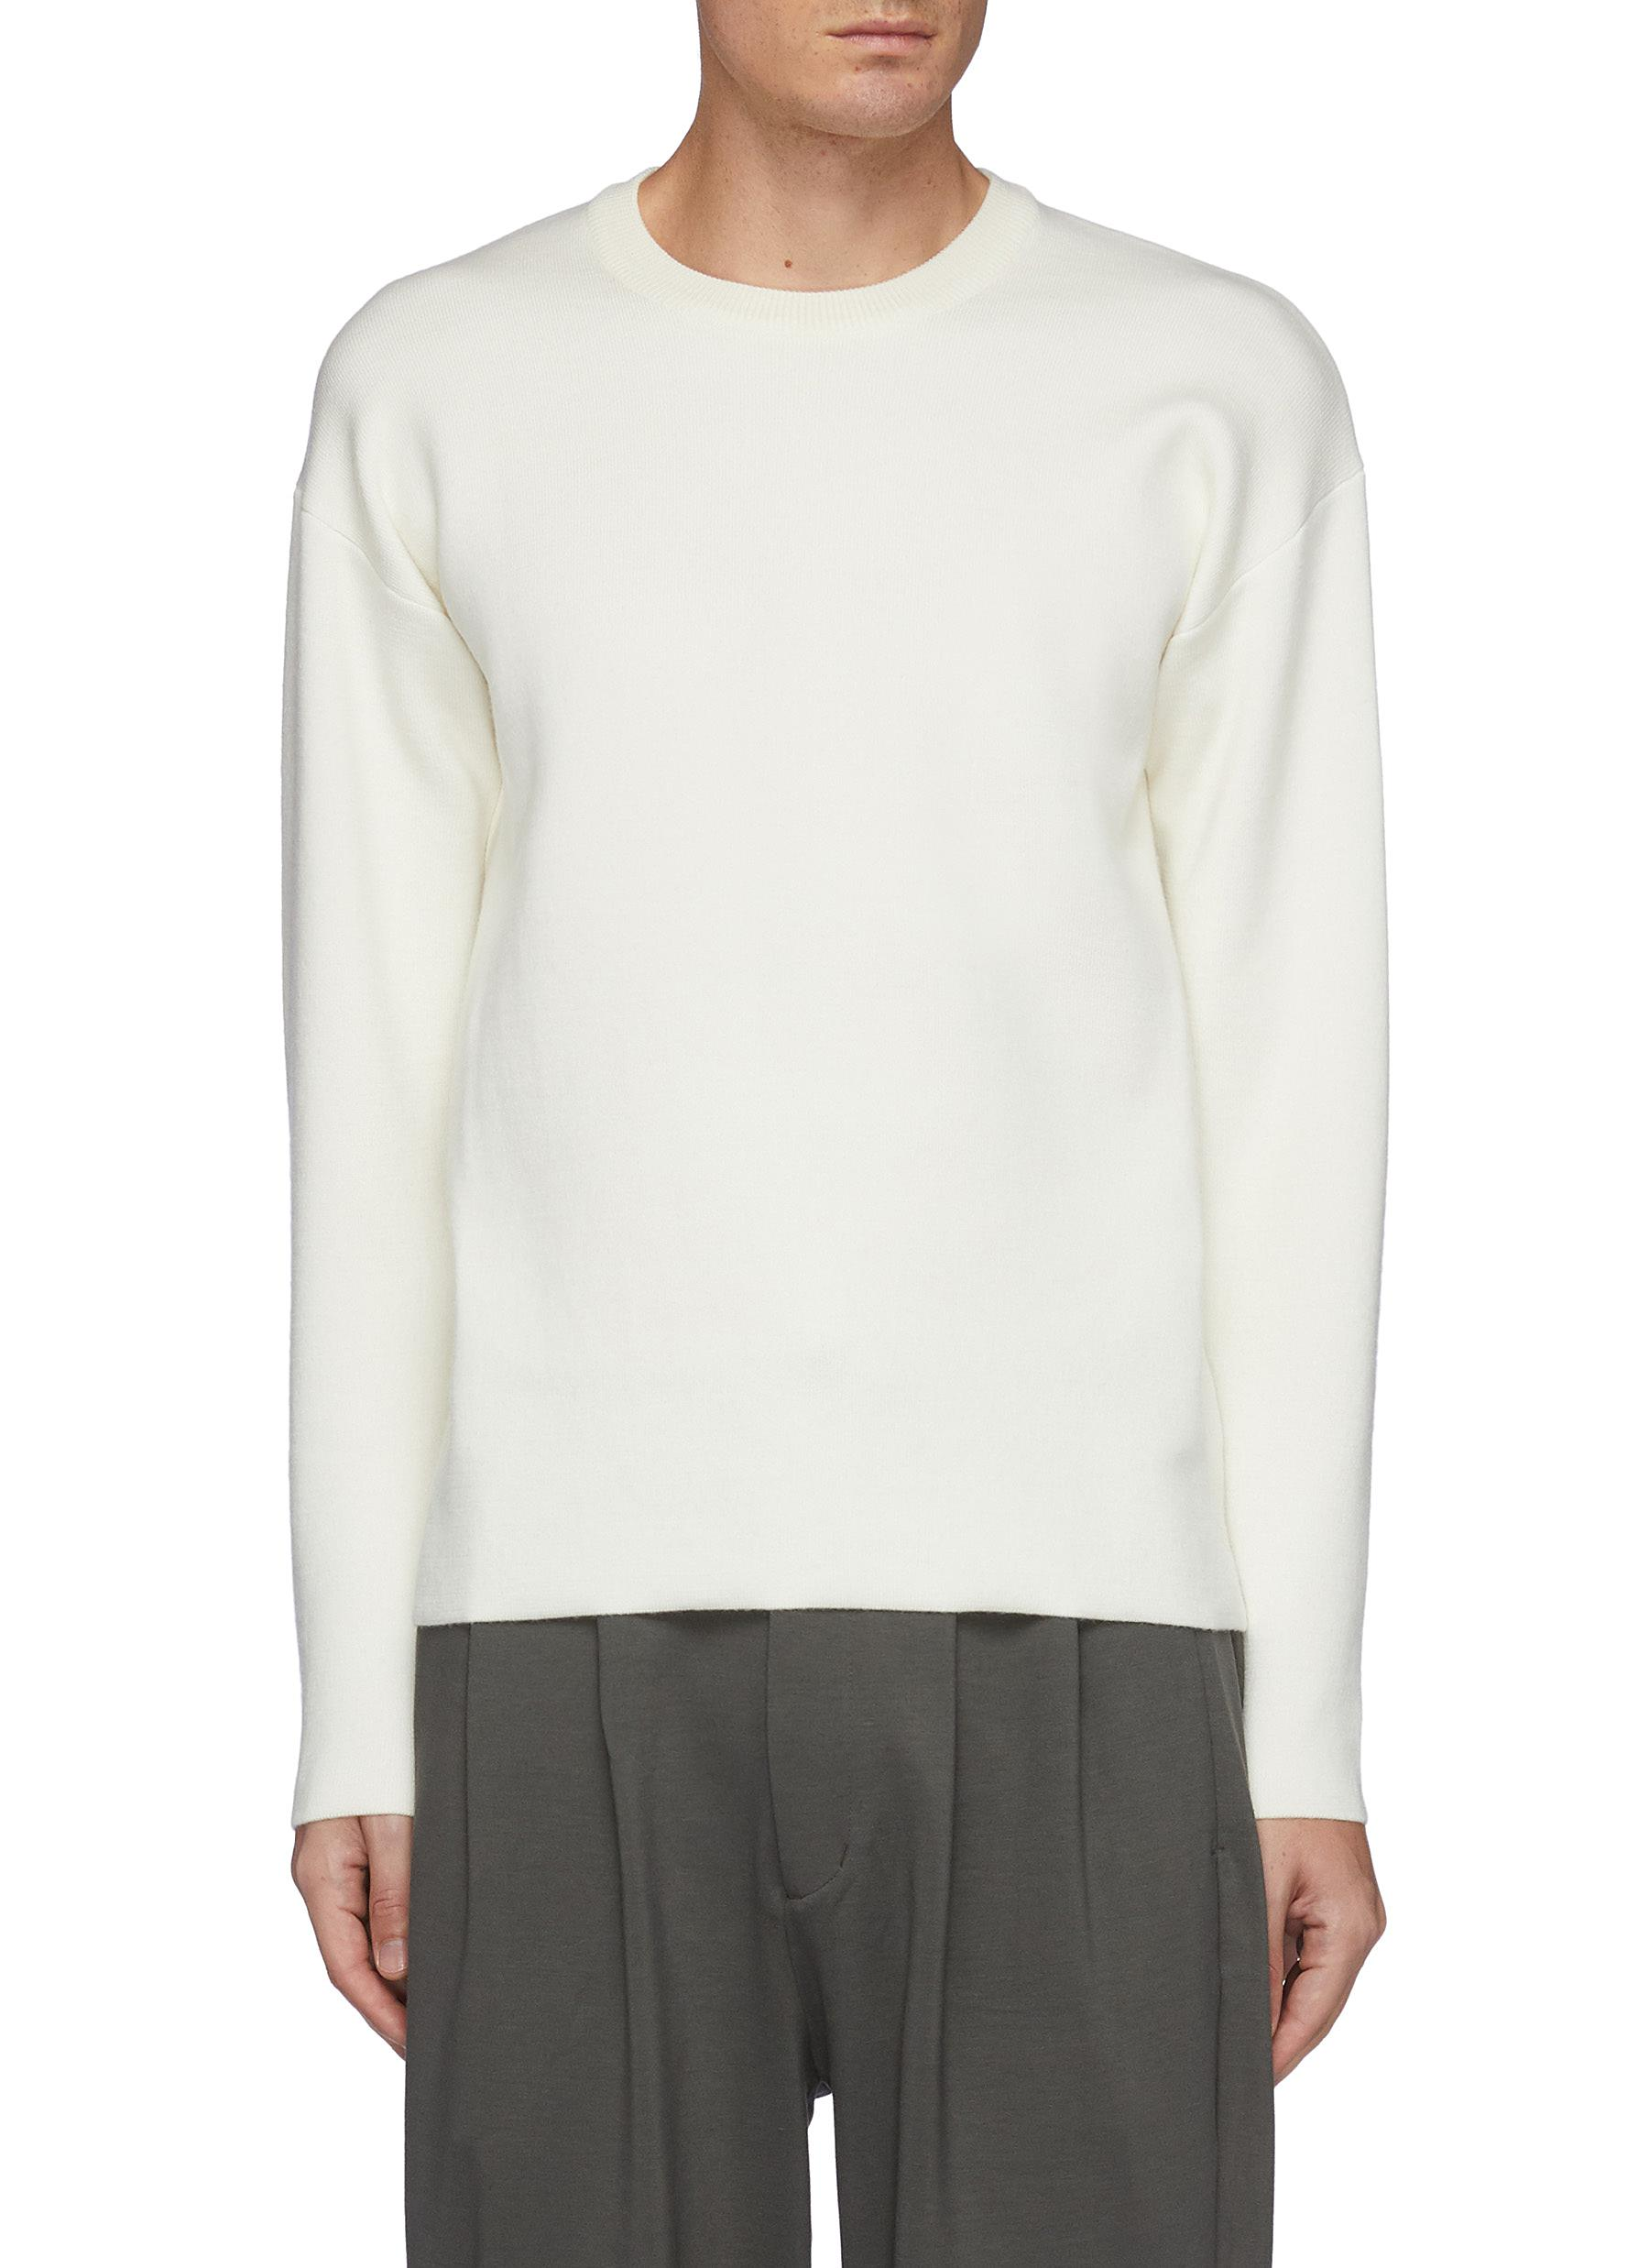 Double Face Wool Knit Crewneck Pullover